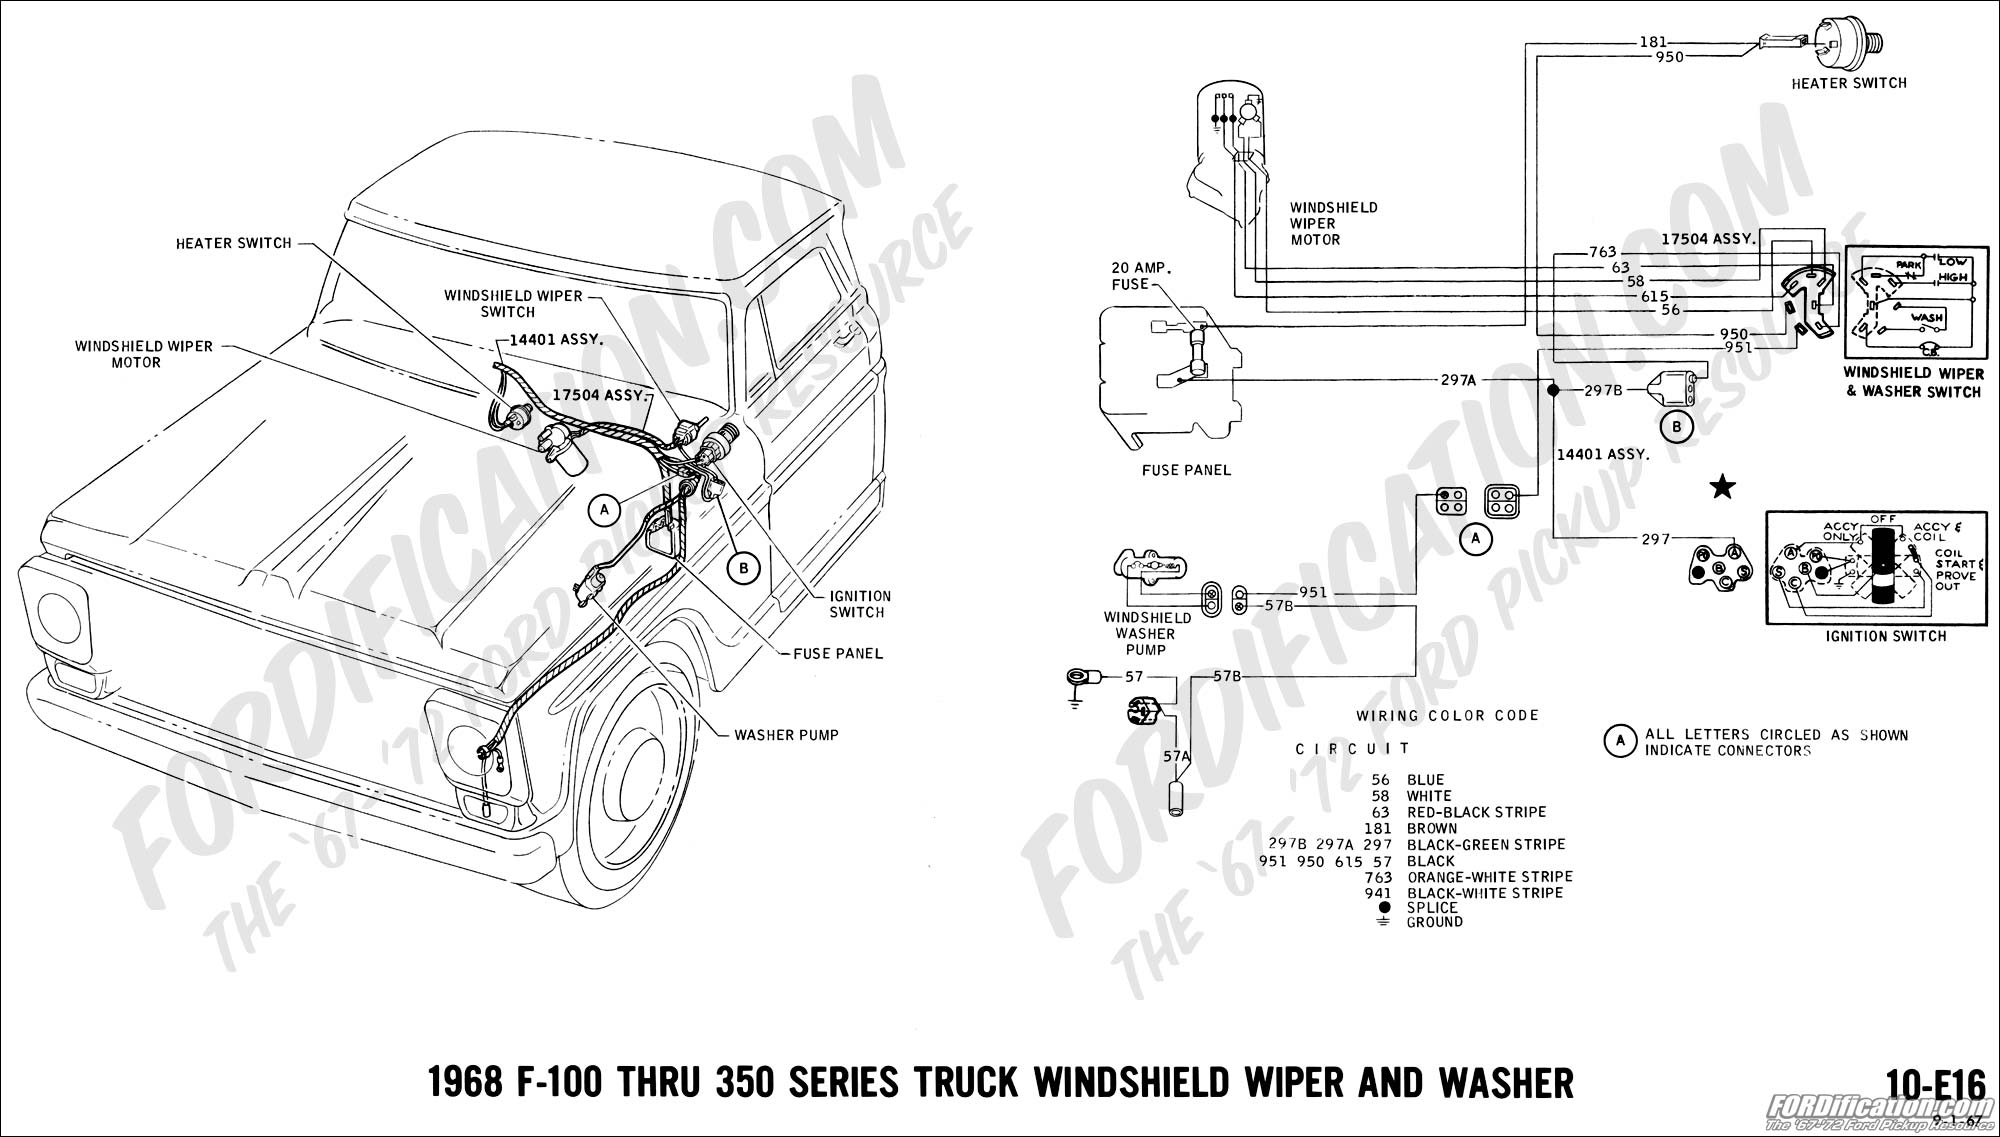 2000 Ford Excursion Wiring Diagram in addition Ford F Parts Diagram Data Wiring Diagrams Fuse Block Explained Flex Schematic Box Steering Column Trusted Dash Electrical Super Duty With Description moreover 2003 F450 Fuse Panel Diagram moreover Wiring Diagrams 1999 F350 as well Schematics h. on 2008 f 450 wiring diagrams